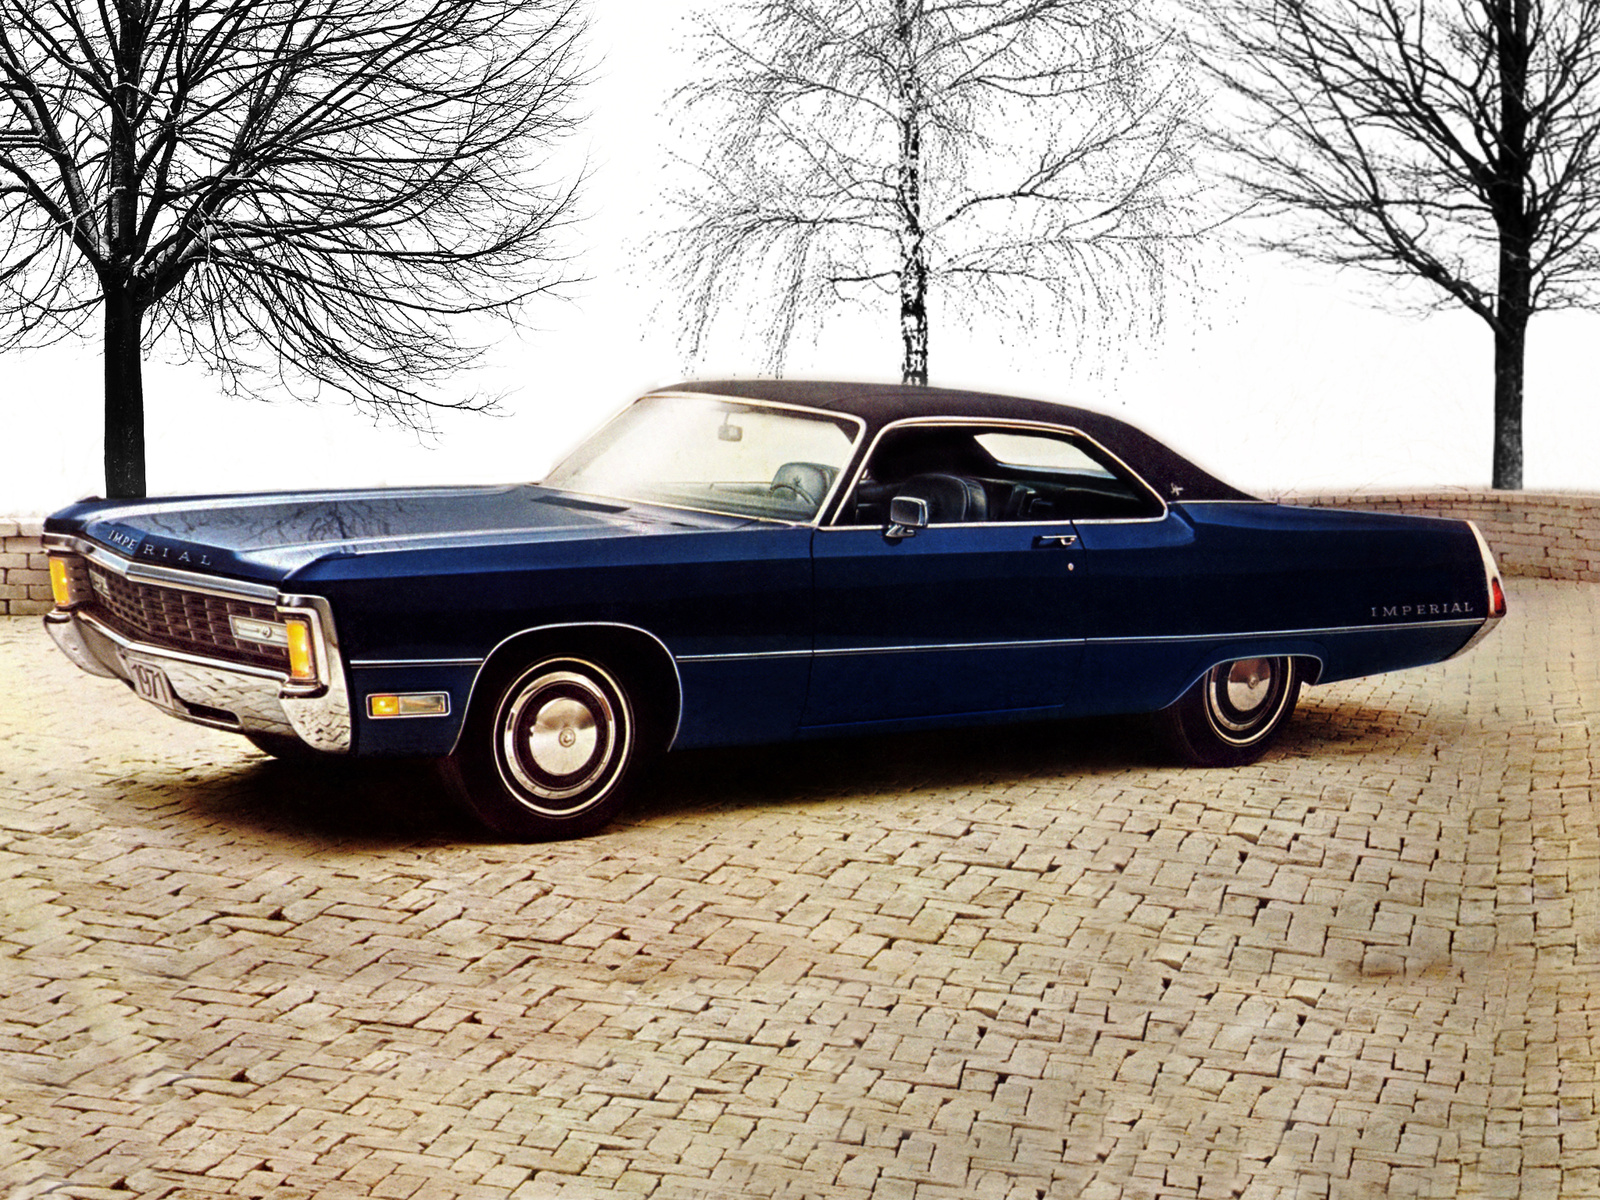 Chrysler Imperial IV 1969 - 1973 Coupe-Hardtop #5